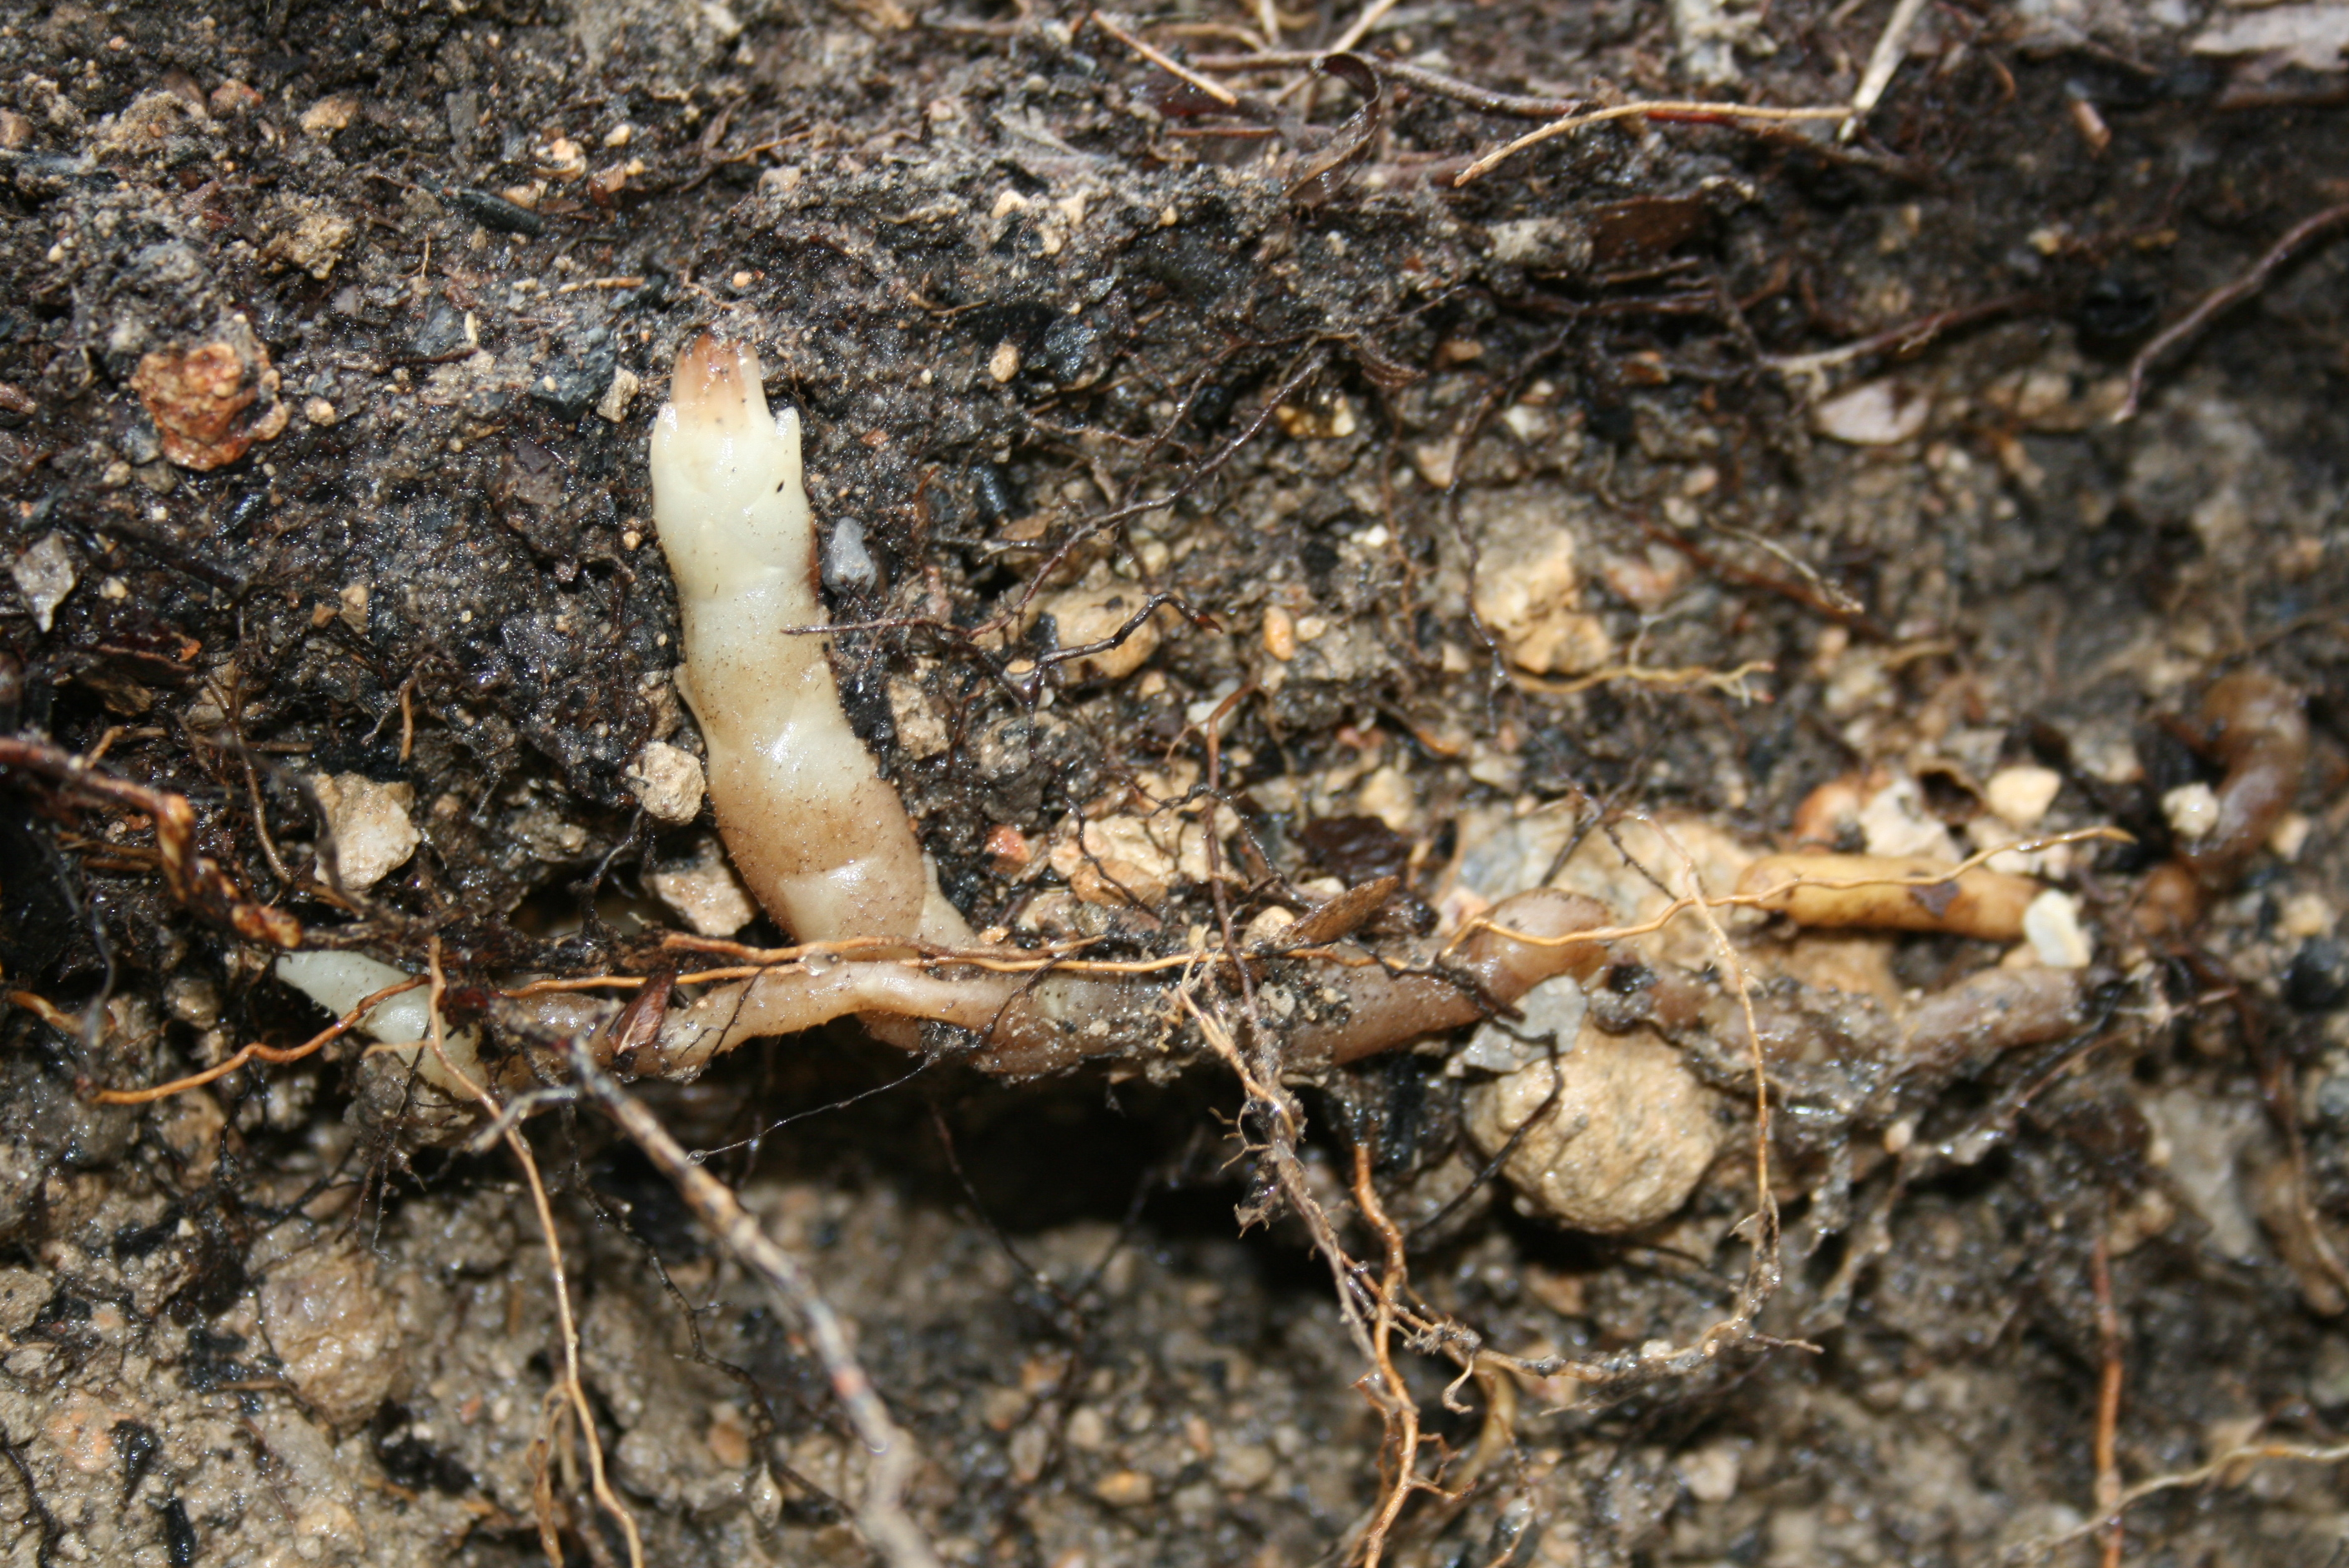 Orchid growing within soil which looks like a small, pale root.